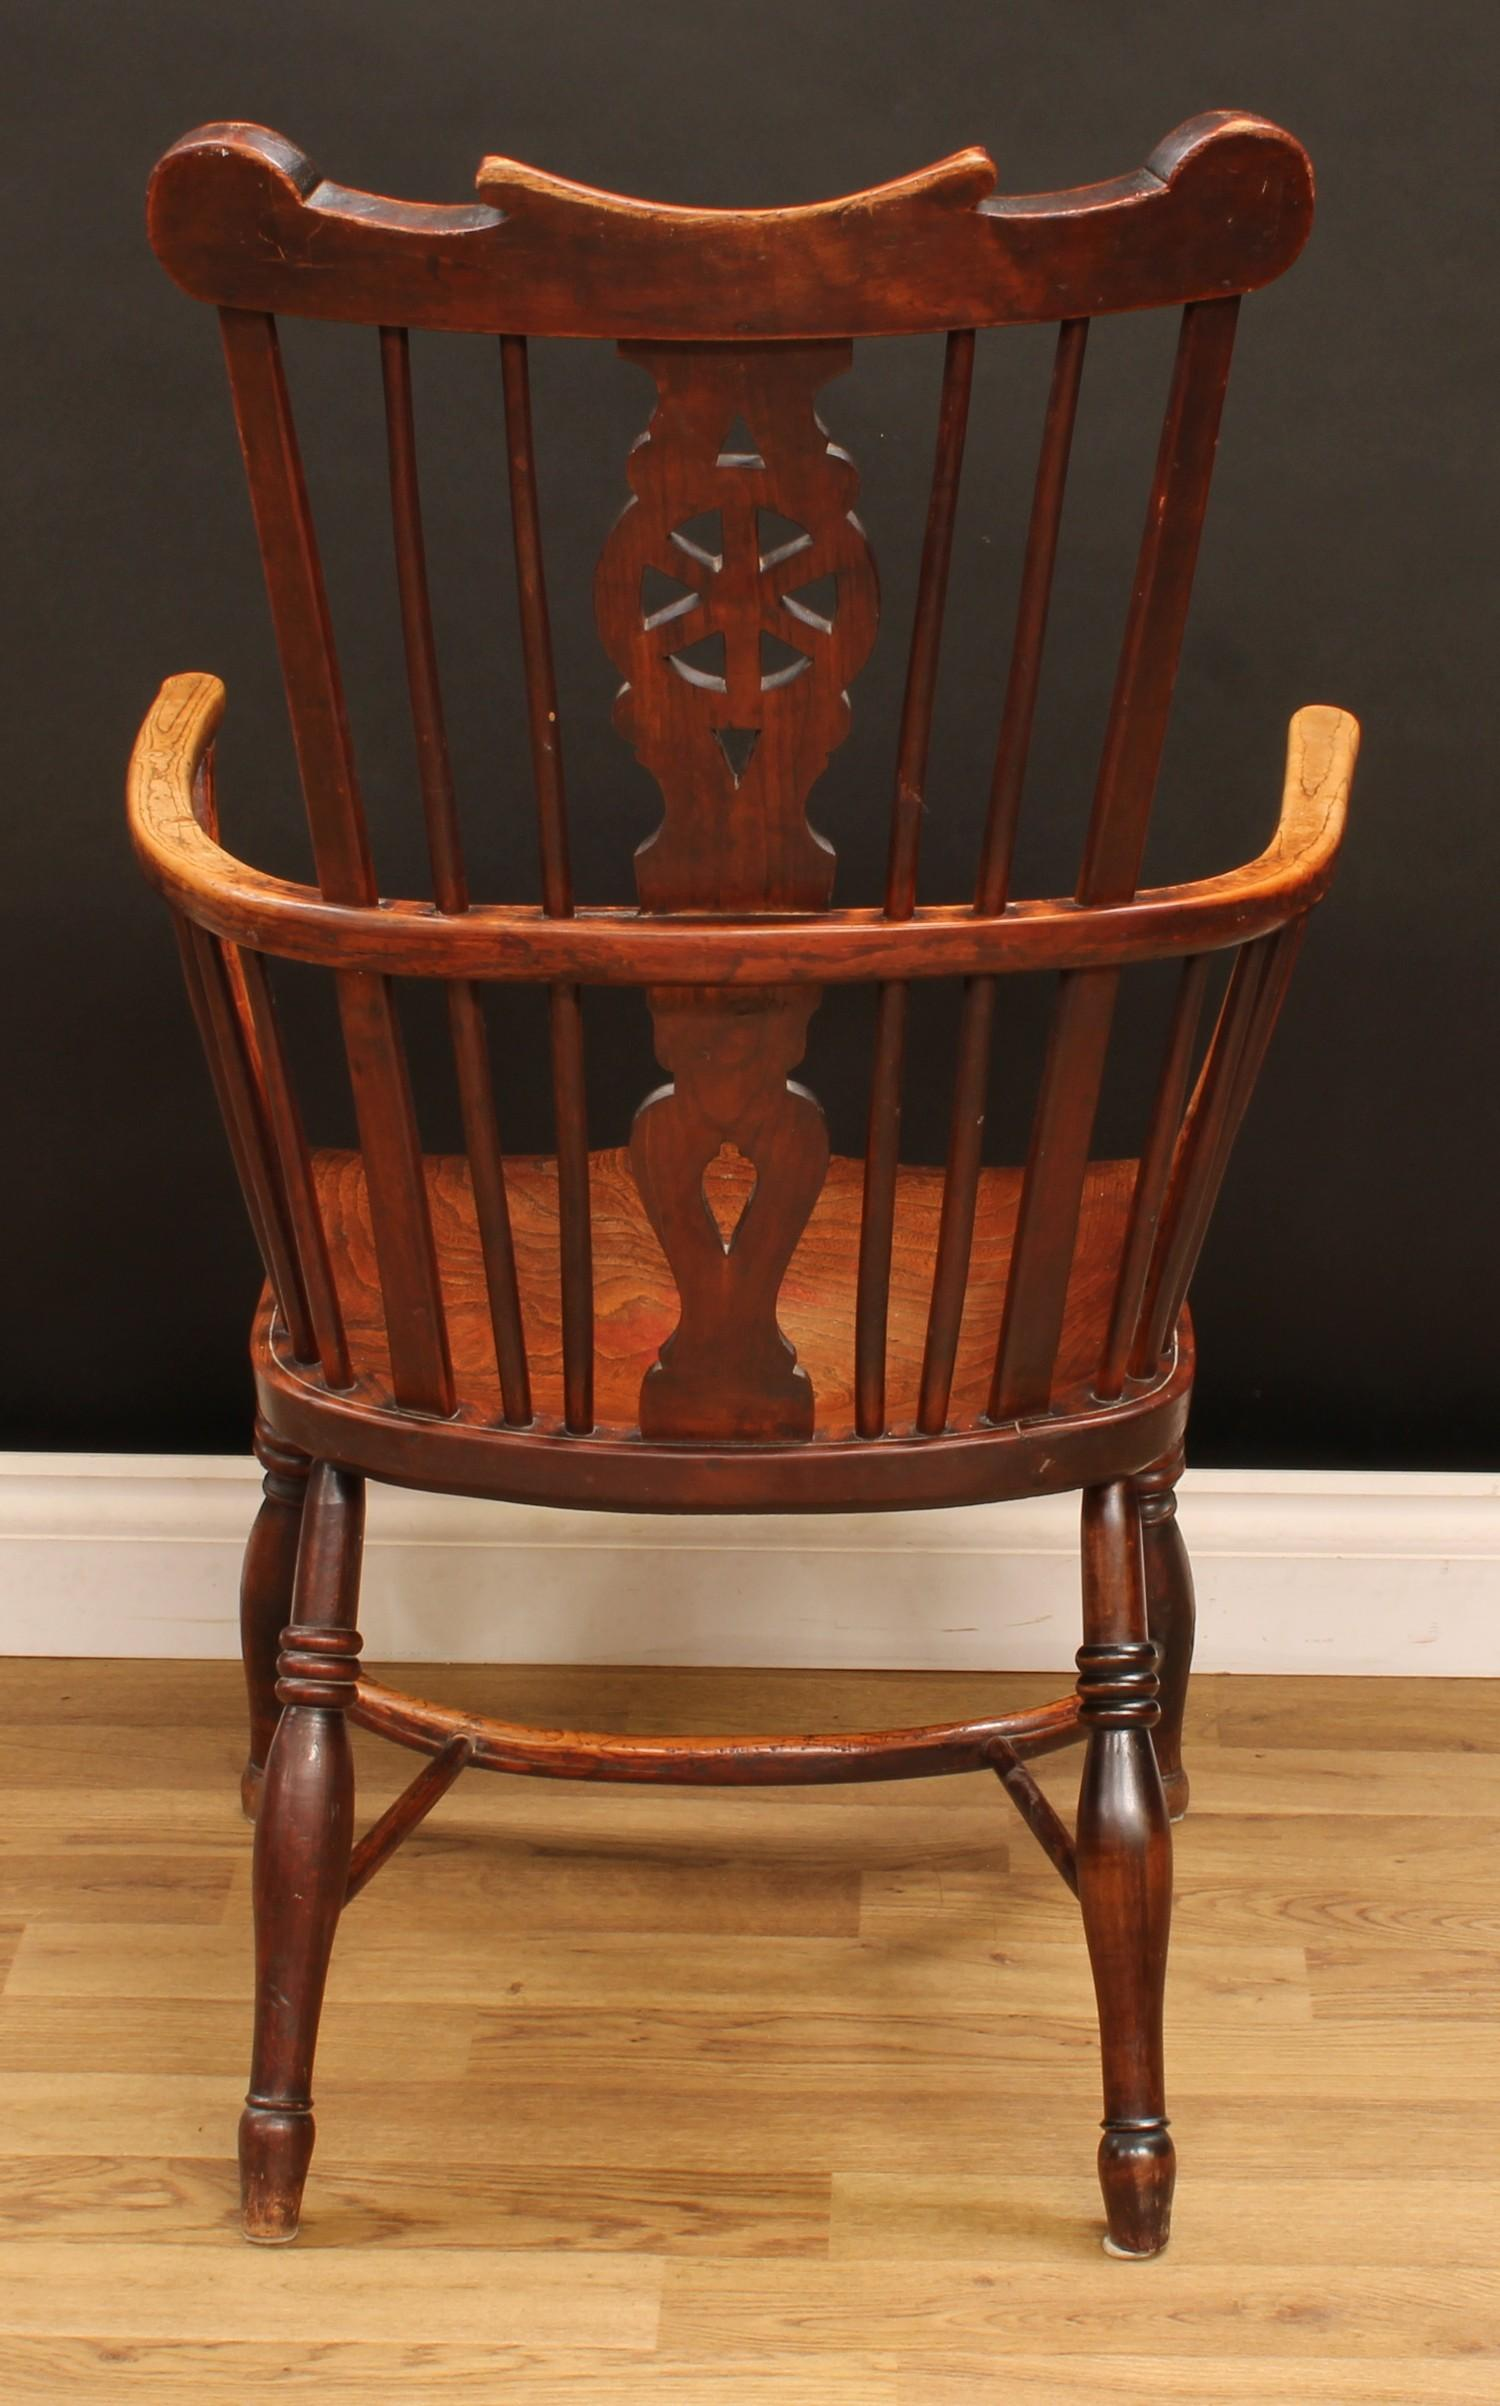 A country house ash and elm Windsor elbow chair, shaped cresting rail above a wheel back splat, - Image 4 of 4